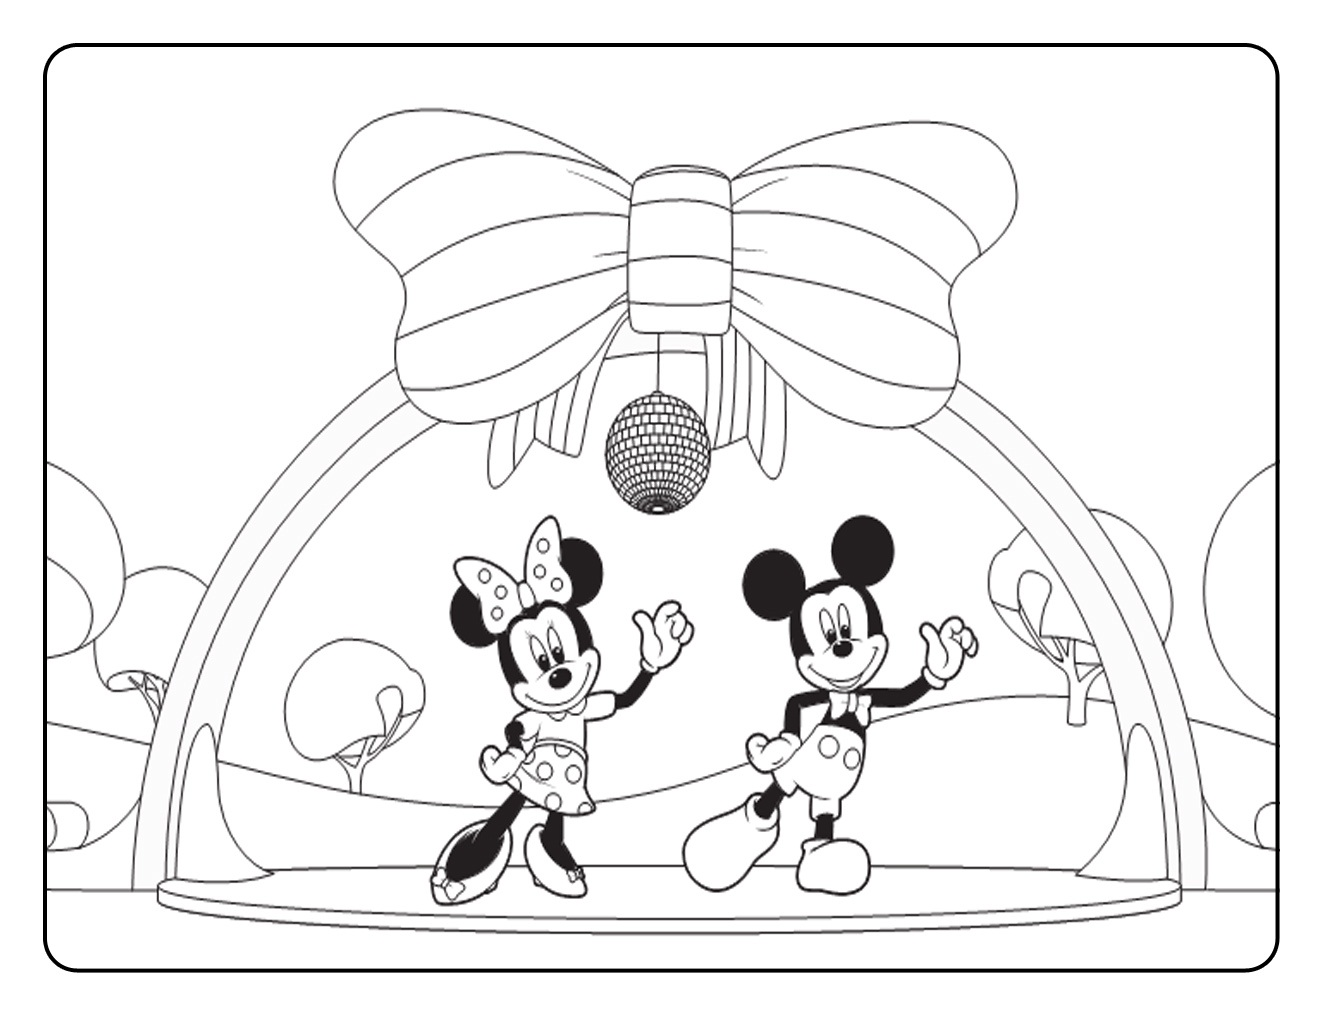 1320x1020 Free Printable Mickey Mouse Coloring Pages For Kids